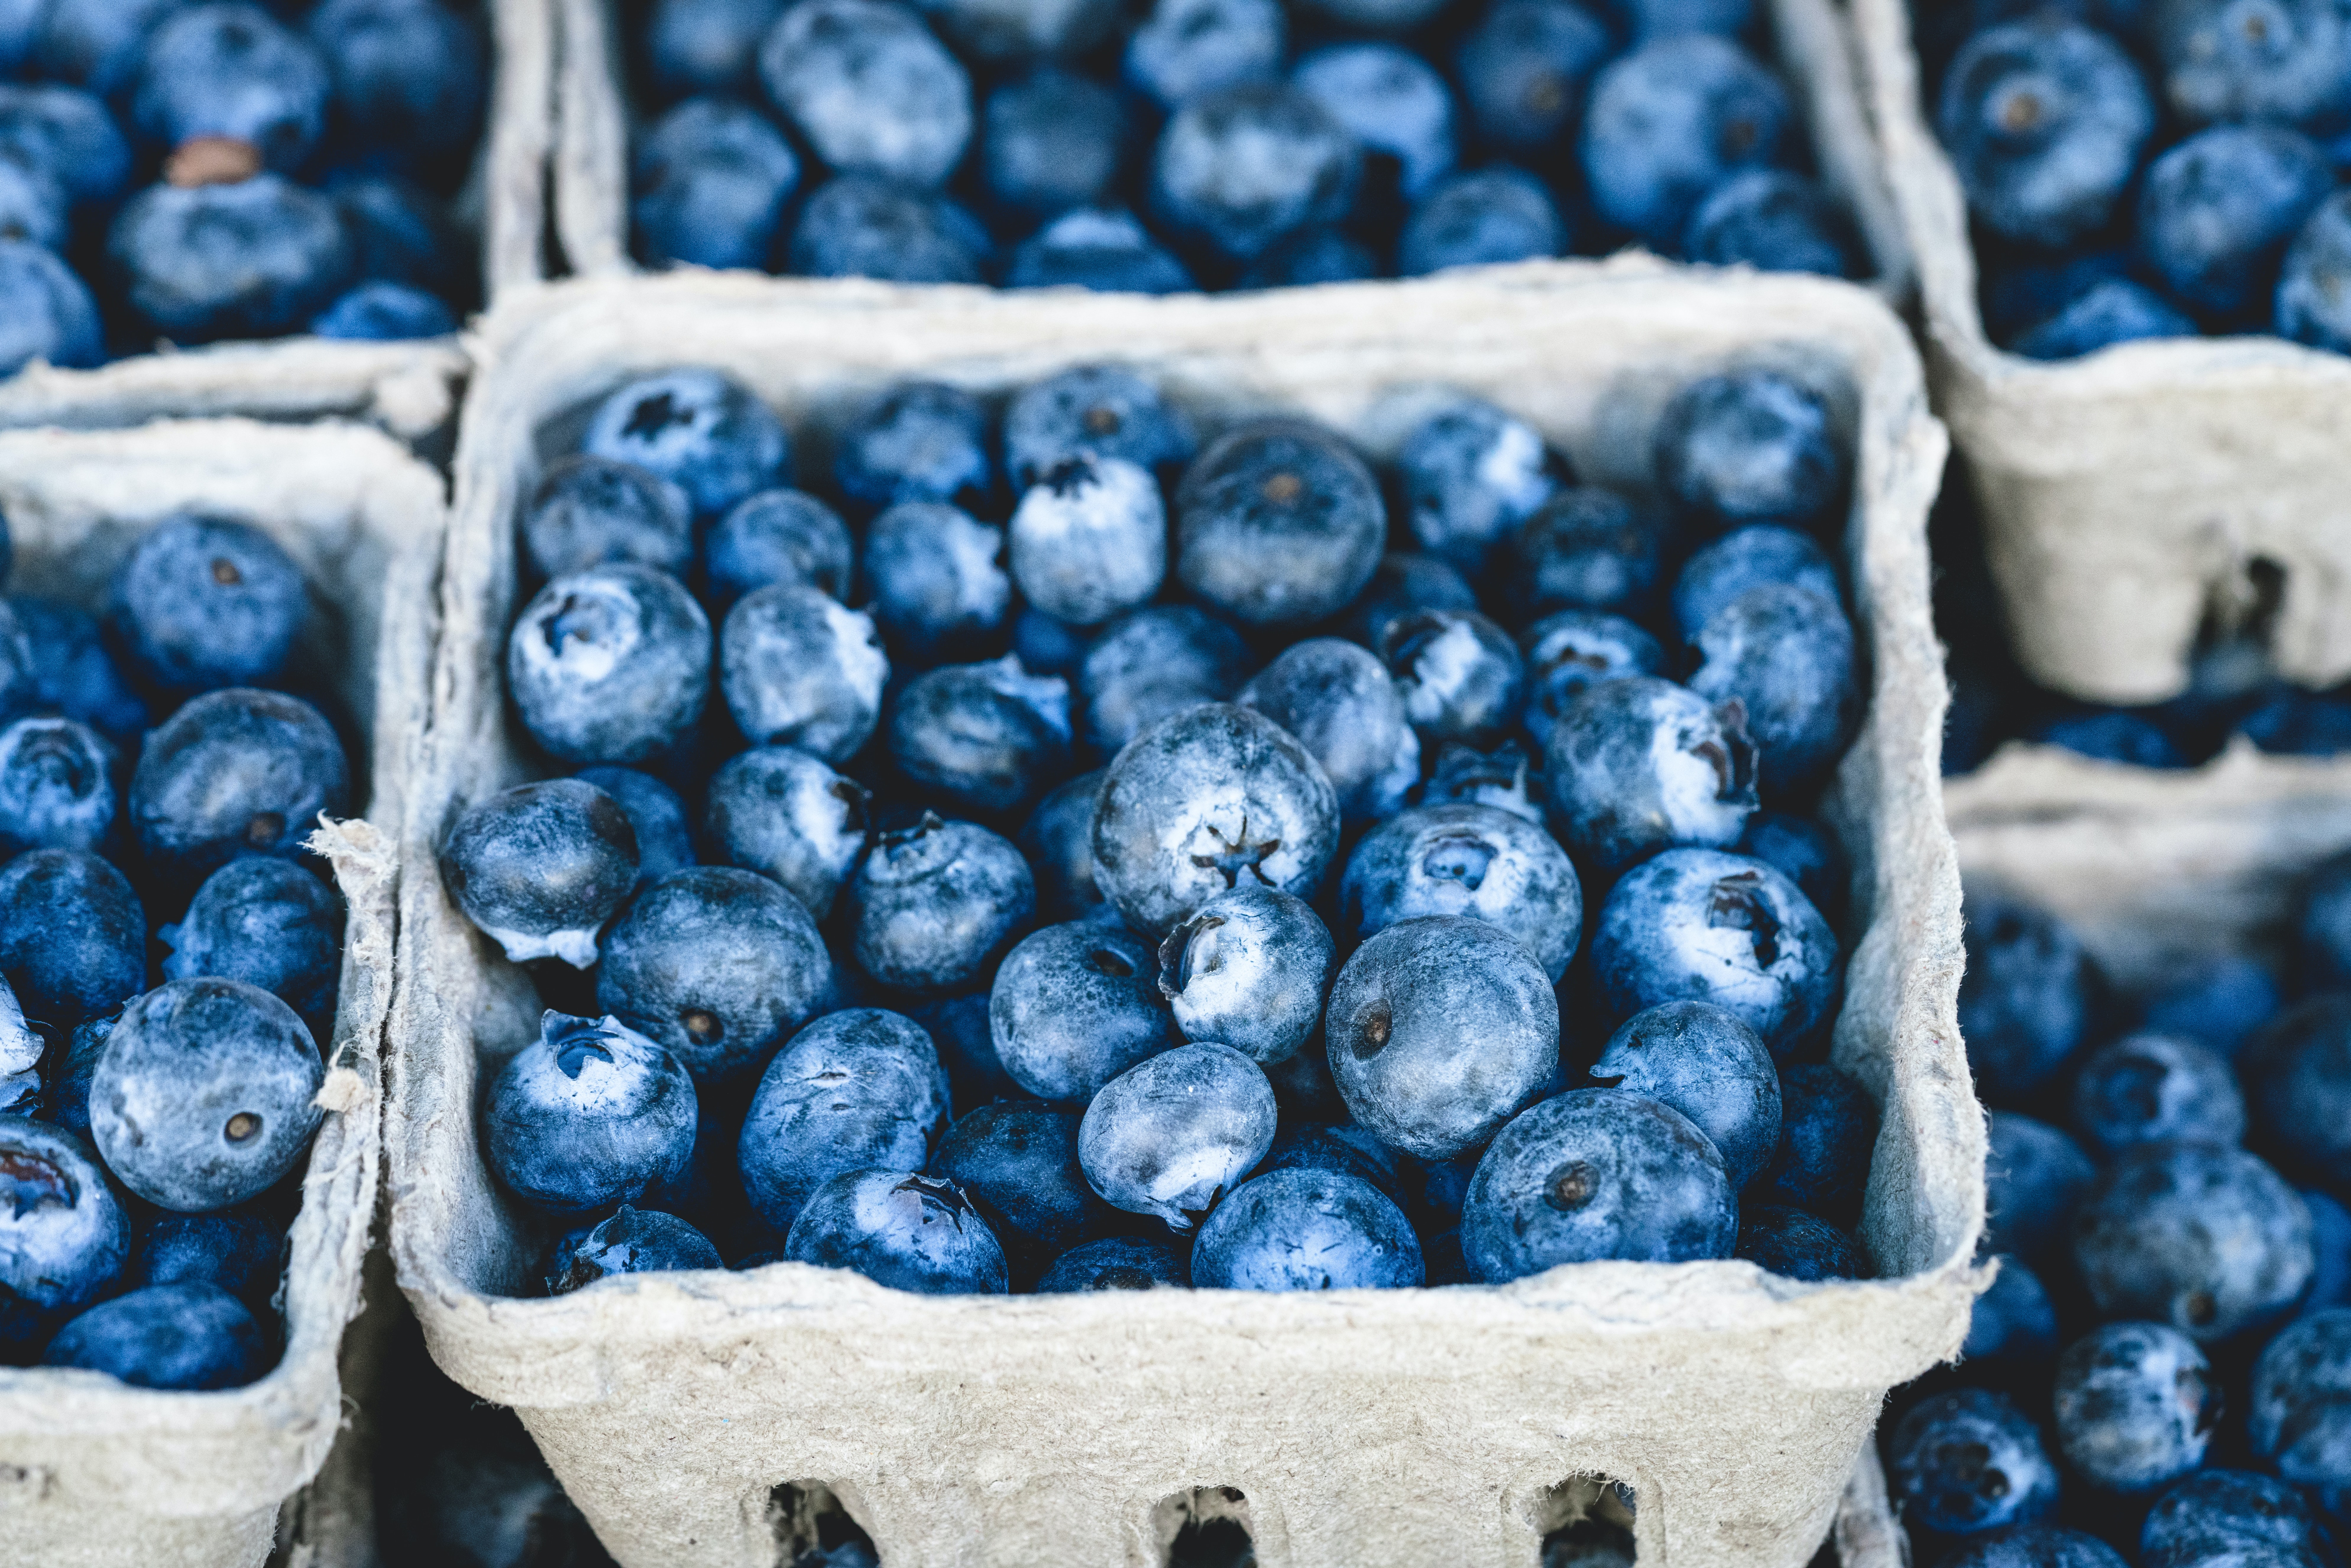 Baskets of fresh blueberries for sale at a farmer's market